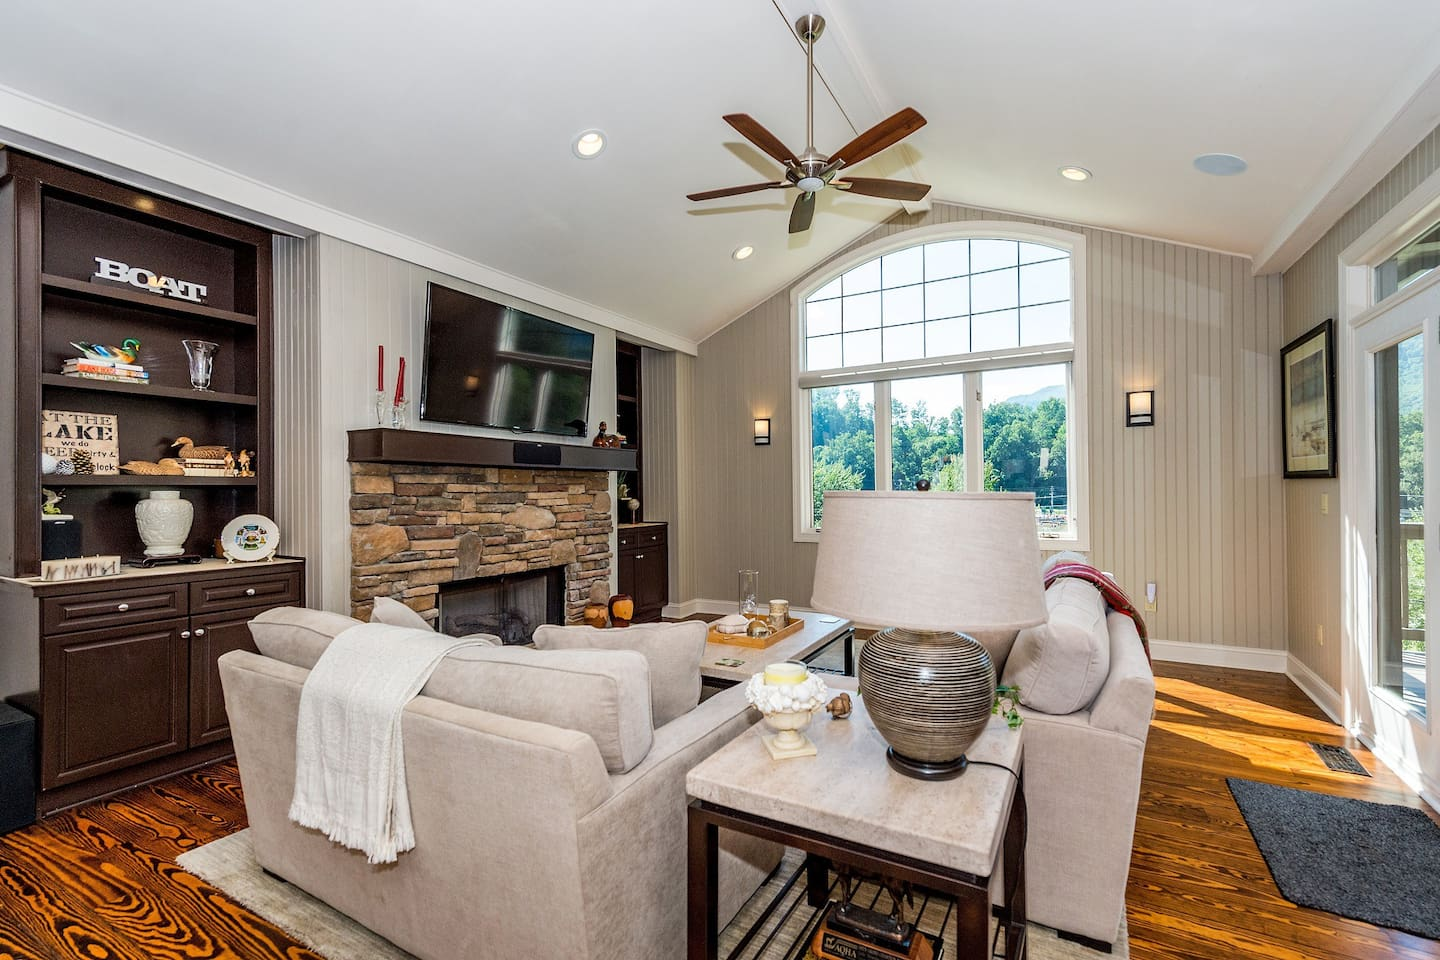 Beautifully furnished townhome overlooking Lake Lure